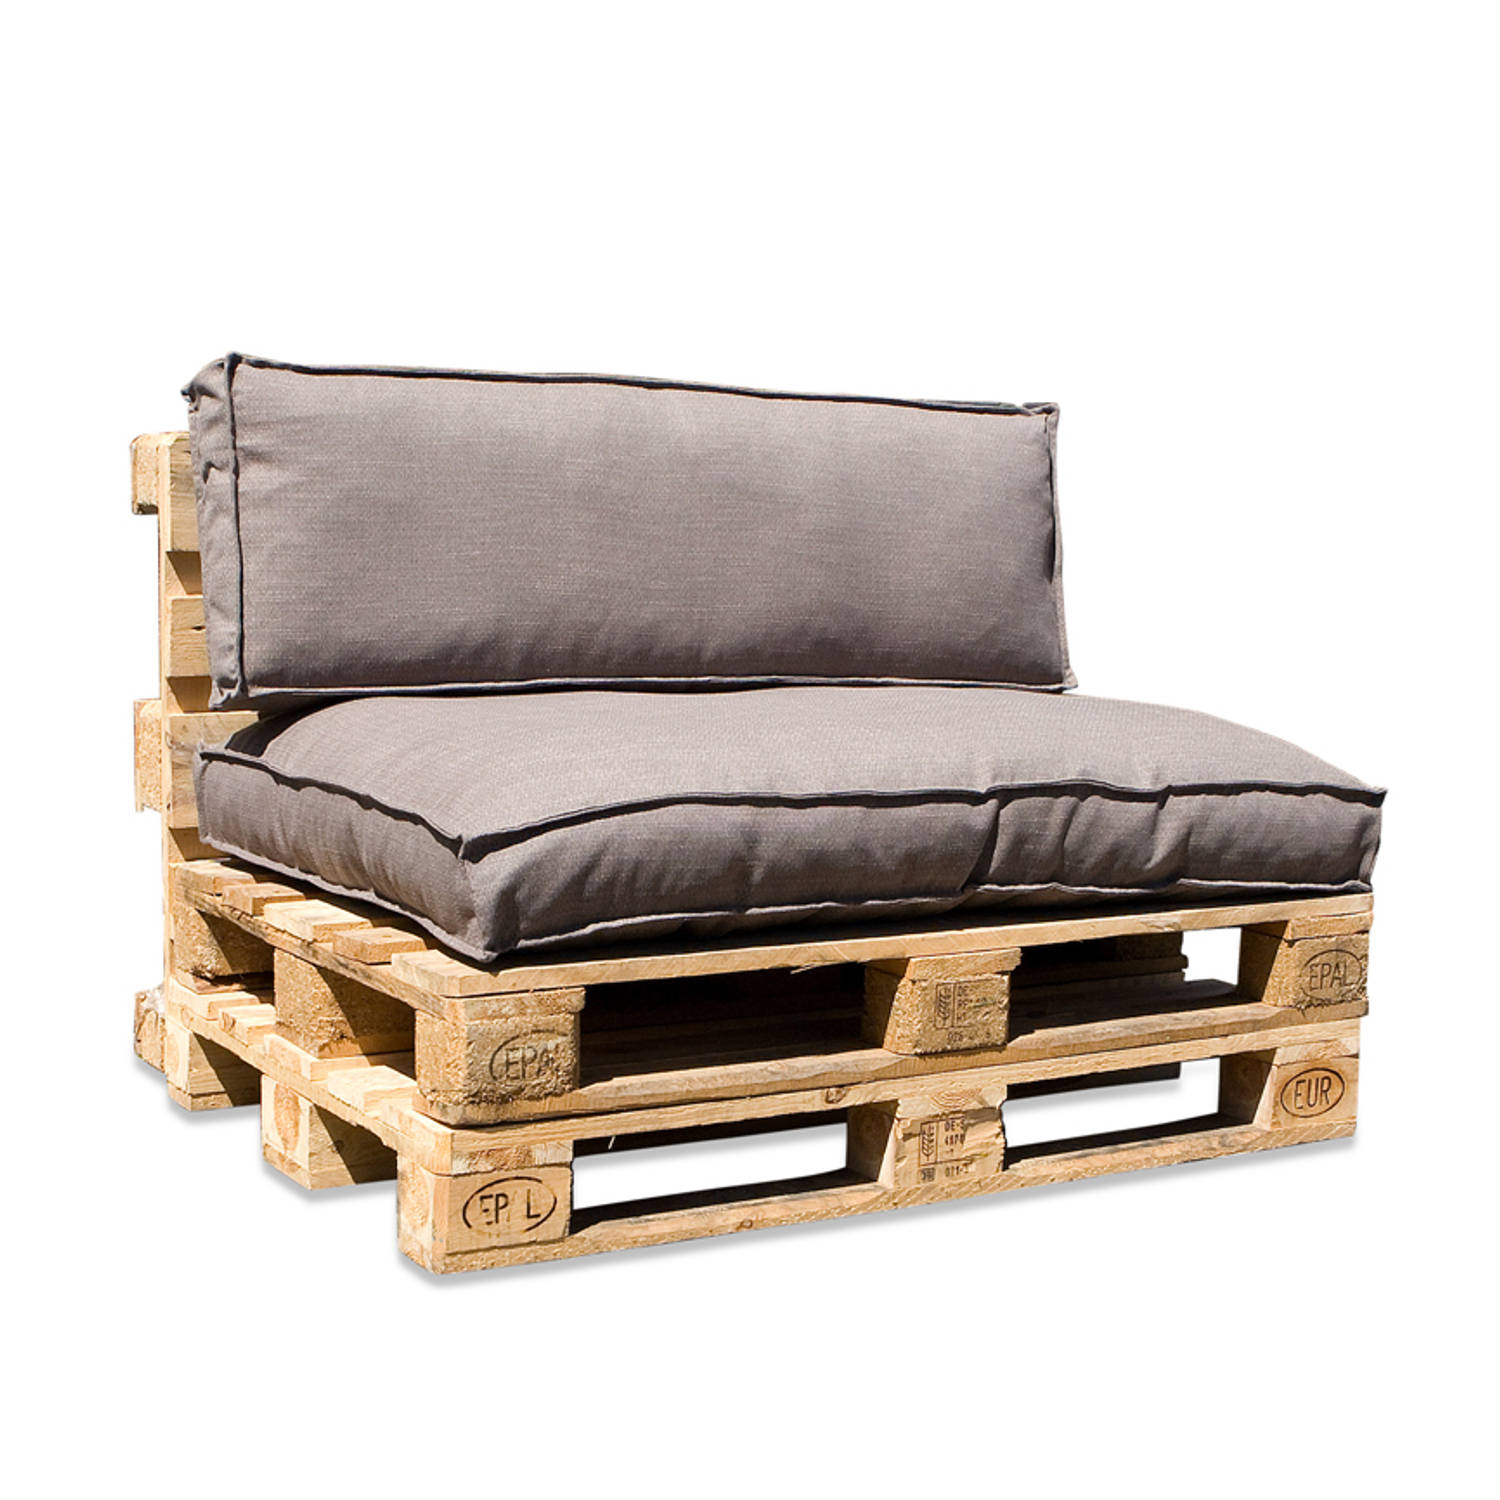 In The Mood Collection In The Mood Palletkussenset Salvador Taupegrijs